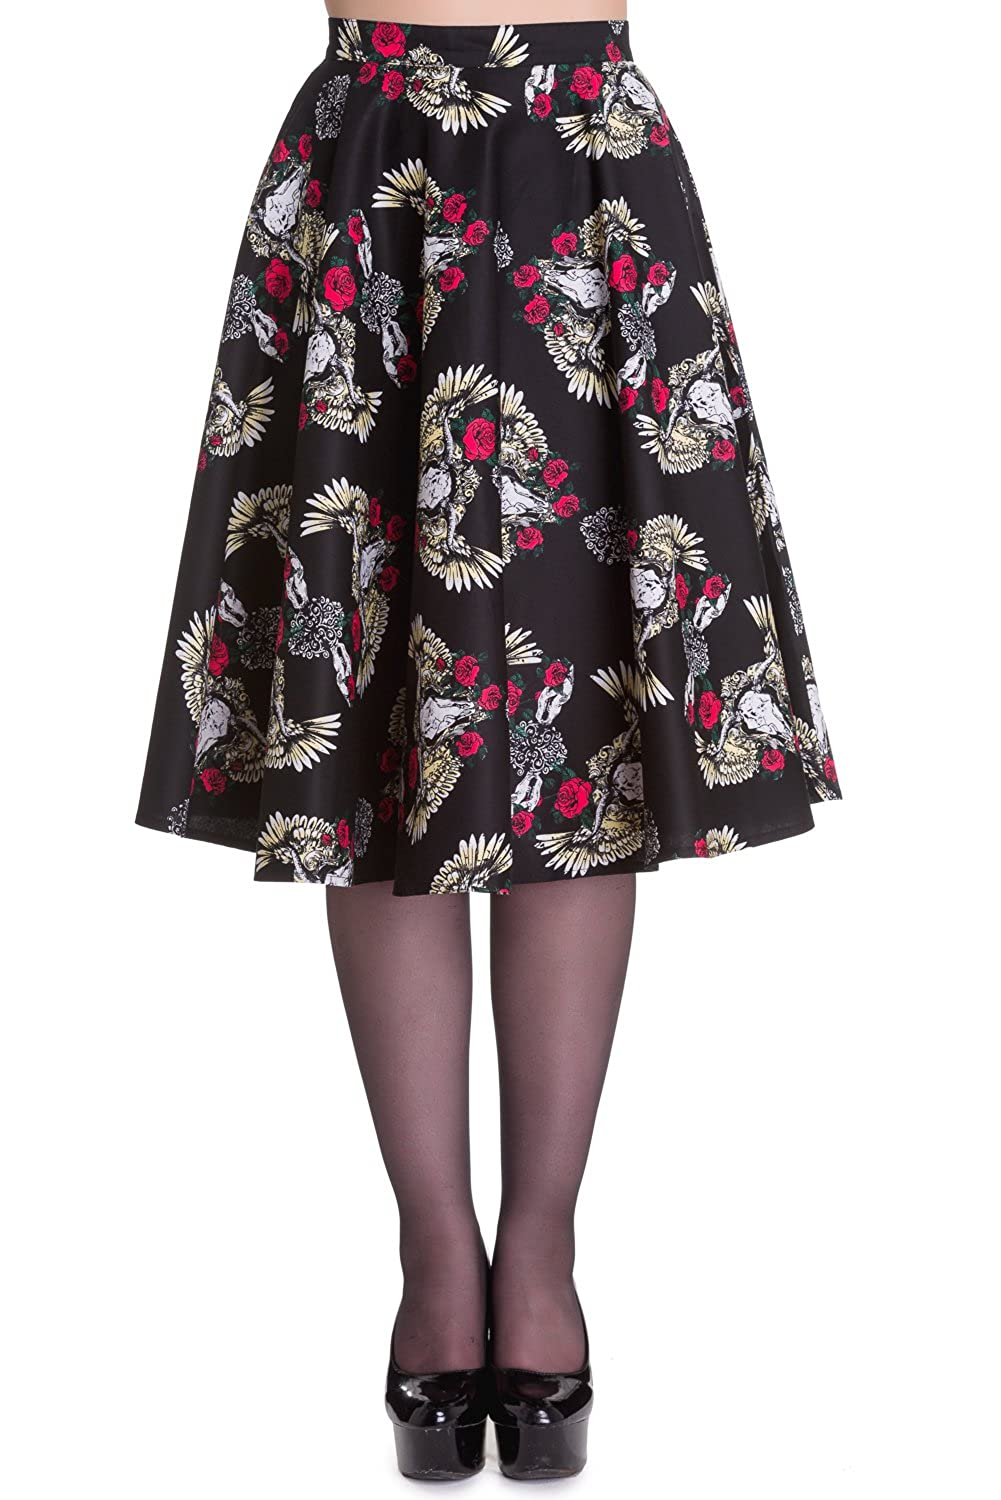 Plus Size Gothic Western Texas Longhorn Skull & Angel Wings Flair Circle Skirt HB-5349Plus